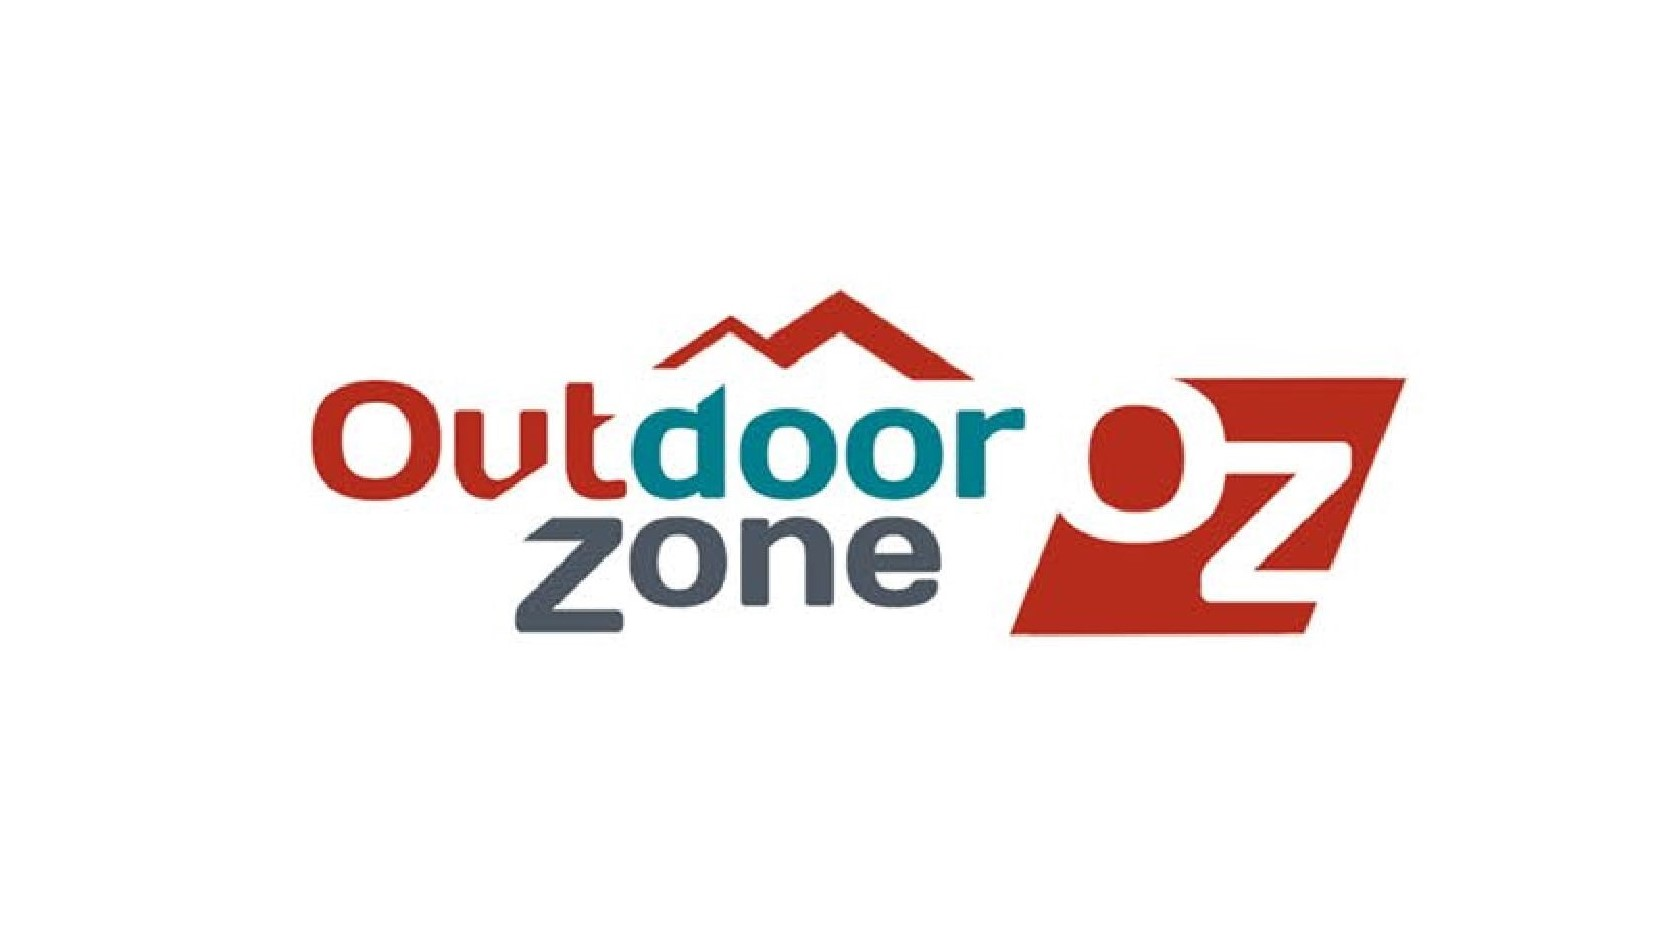 Outdoorzone